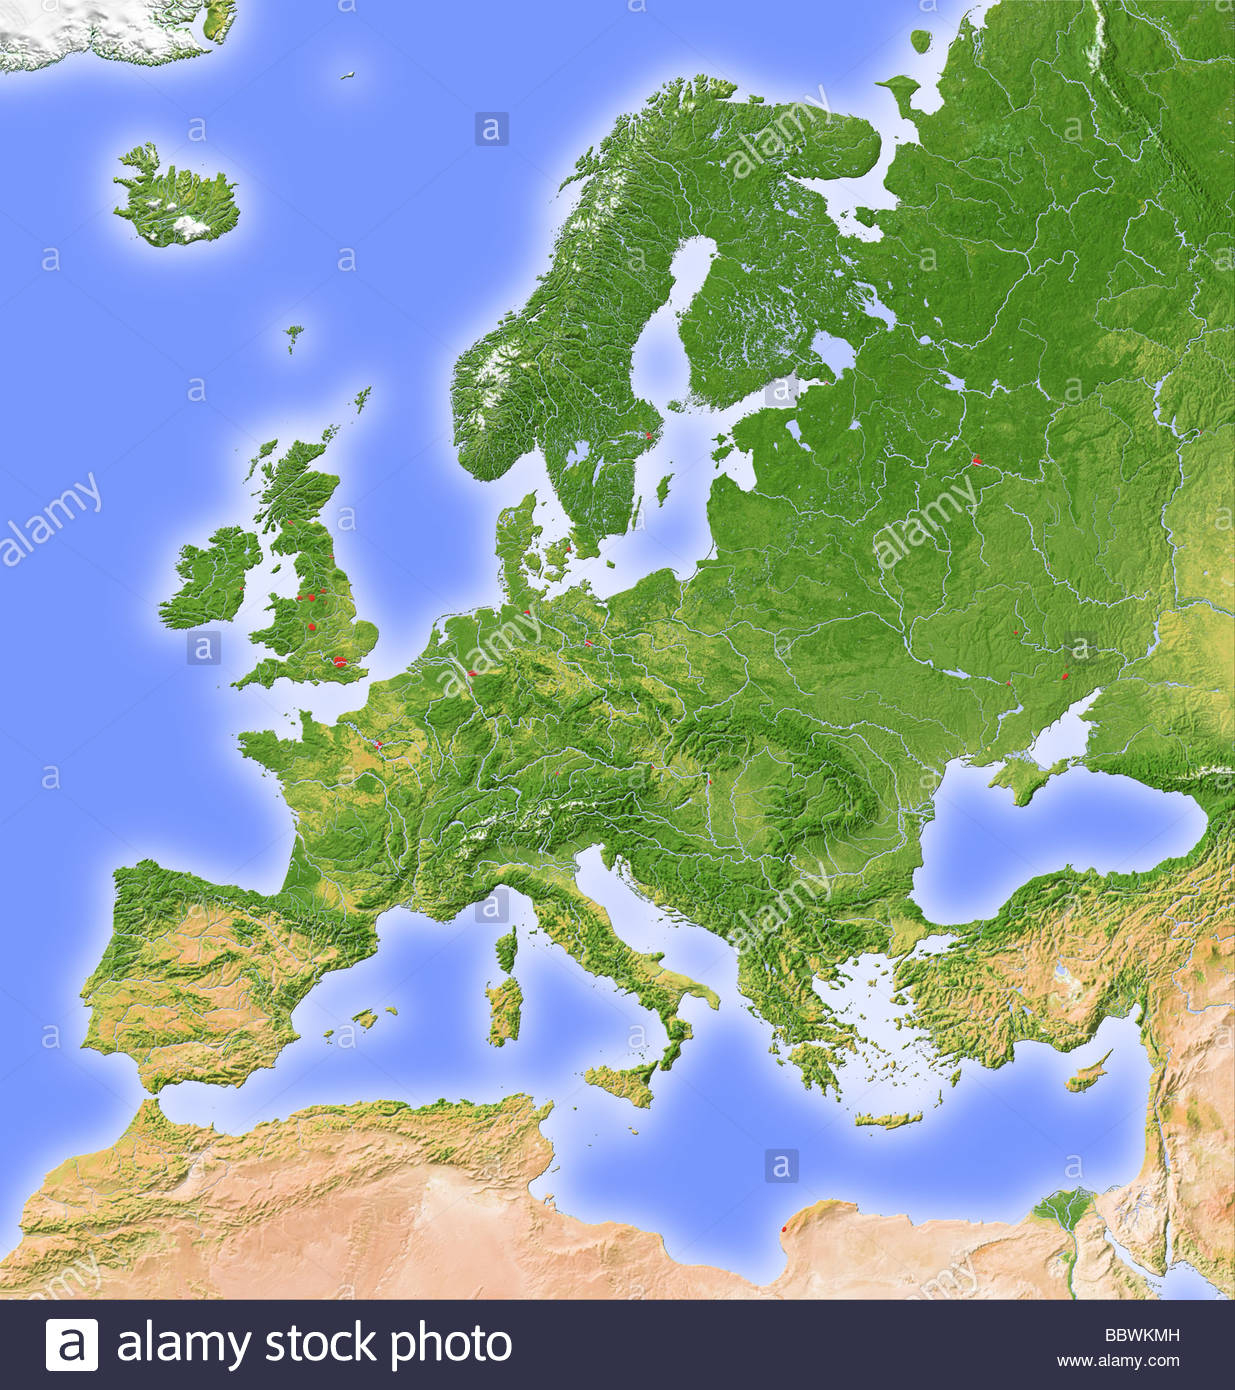 Map Of Europe Stock Photos & Map Of Europe Stock Images - Alamy à Carte De L Europe En Relief